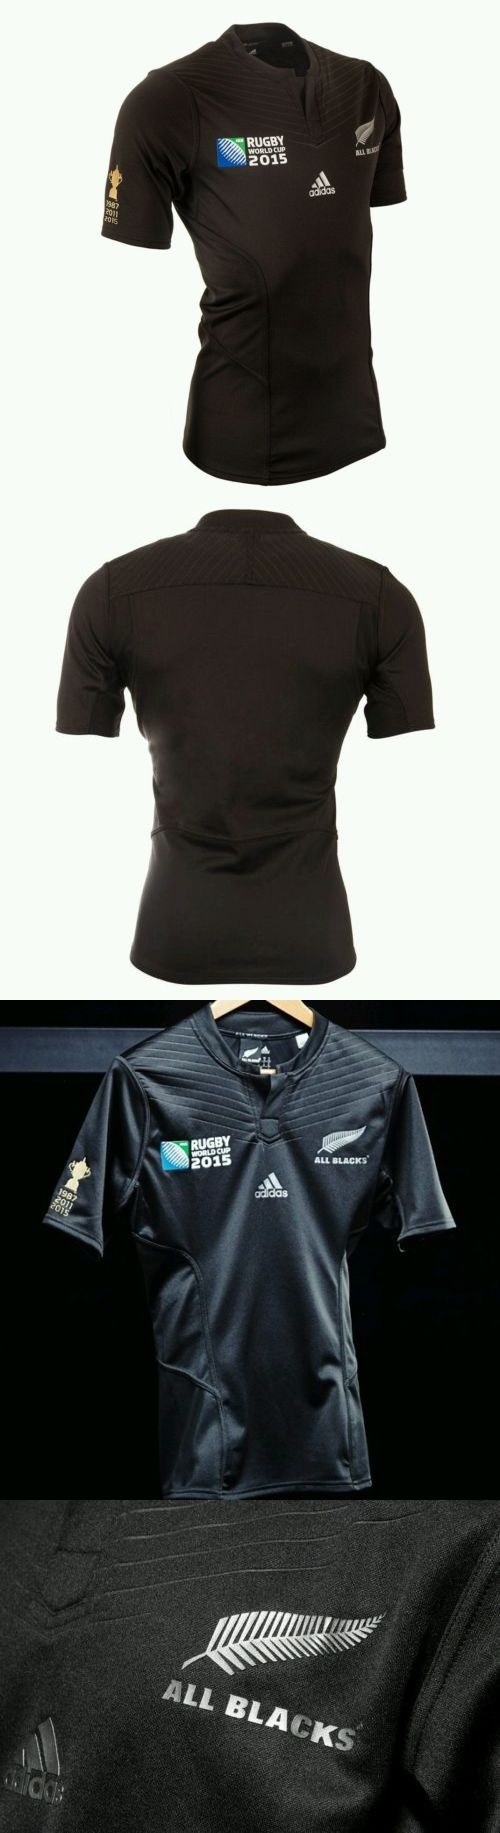 Rugby 21563: Bnwt New Zealand All Blacks Rwc2015 Winners Performance Rugby Jersey Size Large BUY IT NOW ONLY: $159.95